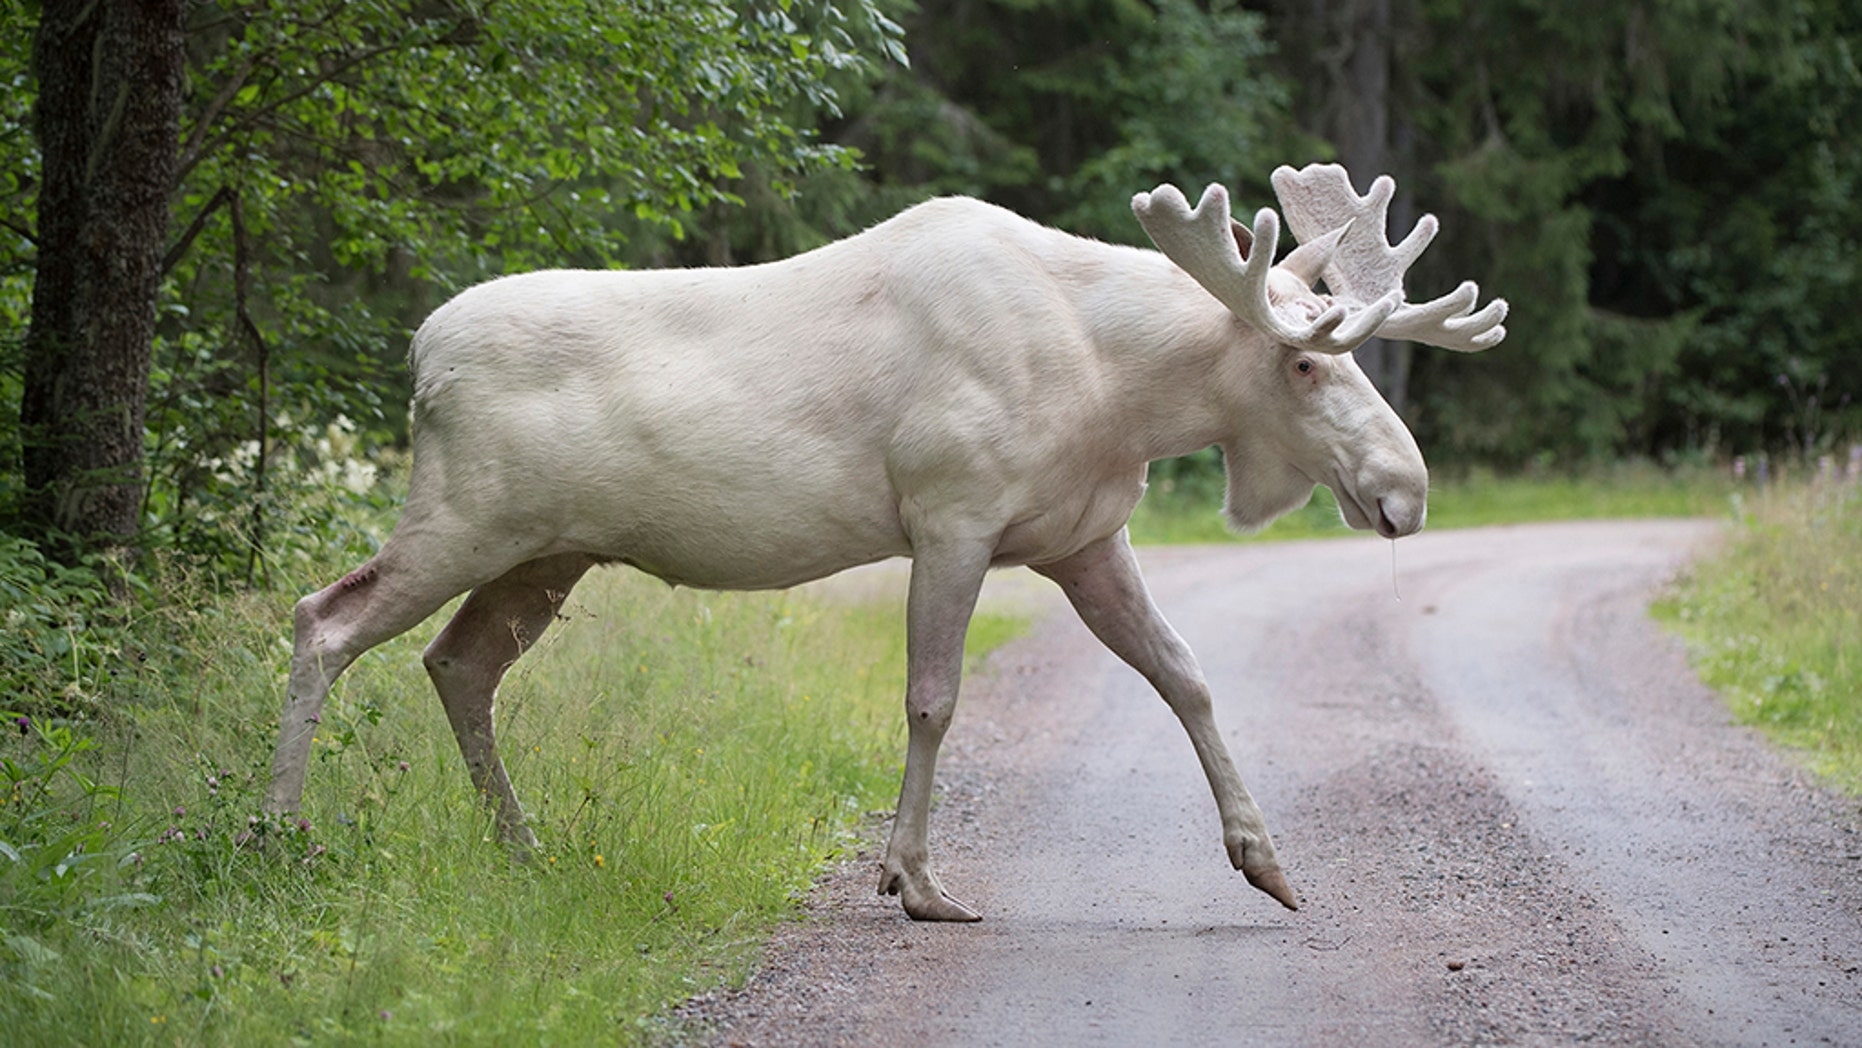 Moose that are more than 50 percent white are protected by the 1997 Fish and Wildlife Conservation Act.